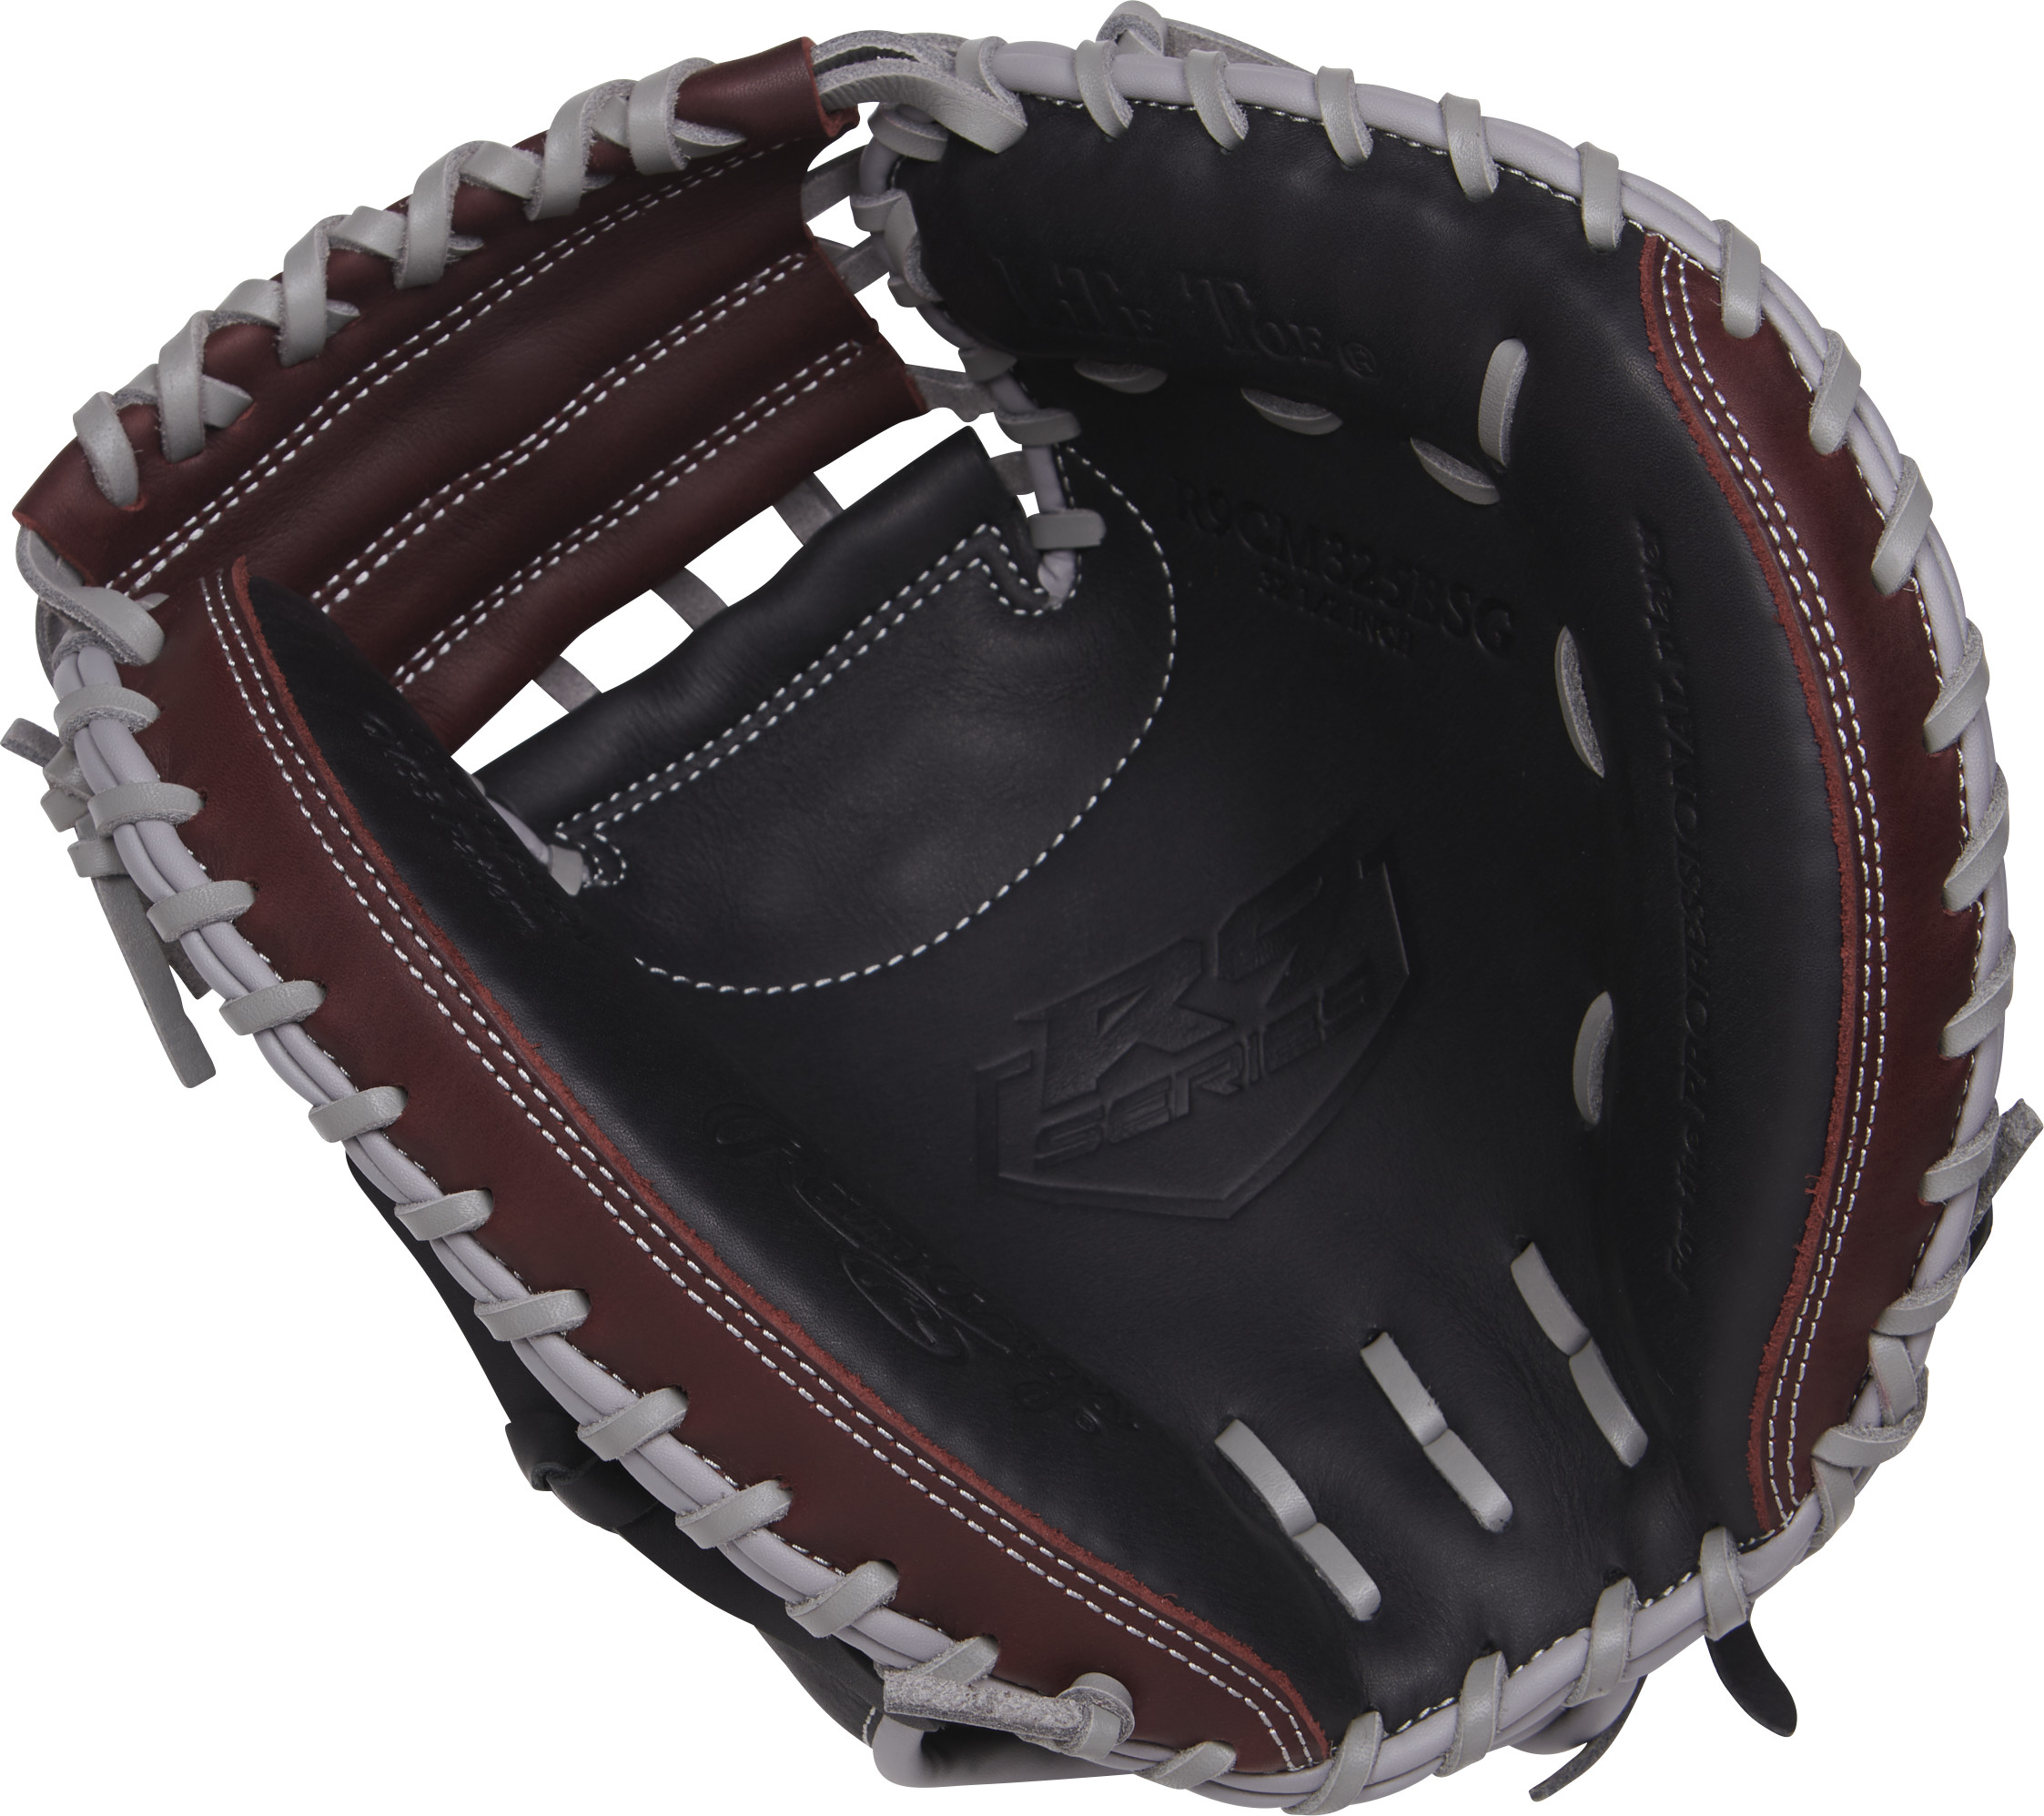 http://www.bestbatdeals.com/images/gloves/rawlings/R9CM325BSG-1.jpg